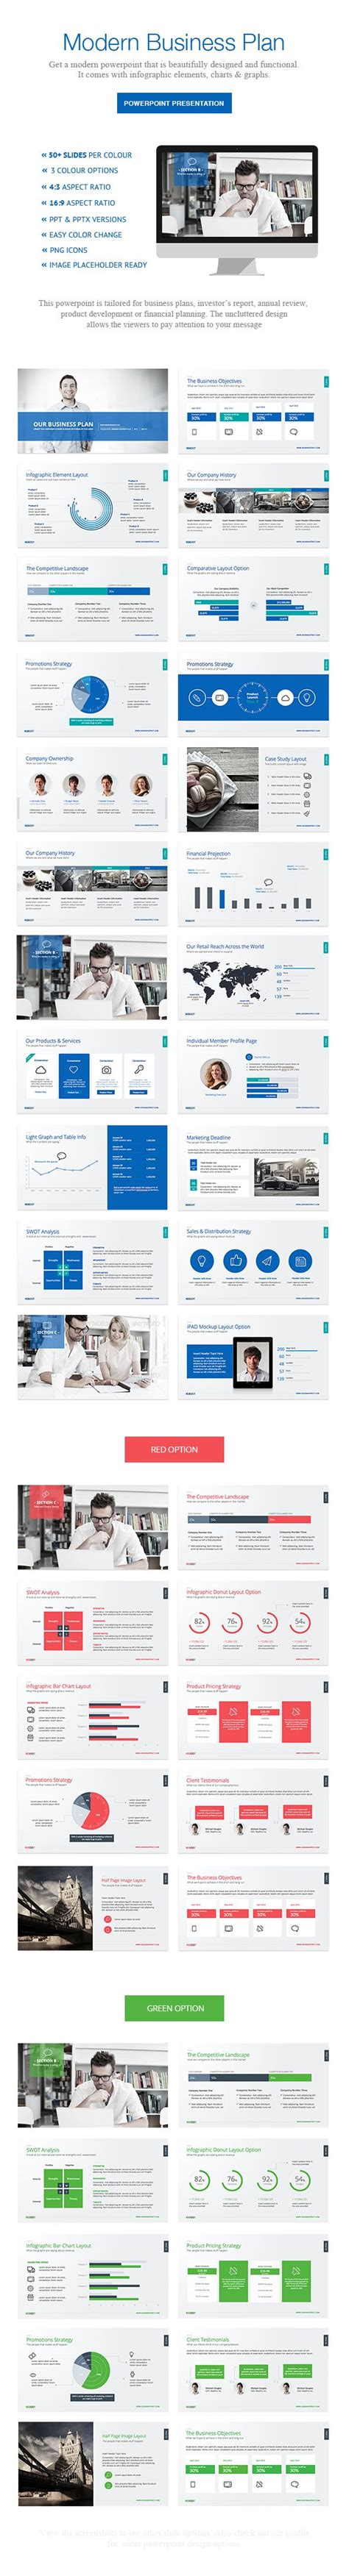 powerpoint template by design district via behance 34 best images about presentation slides inspiration on